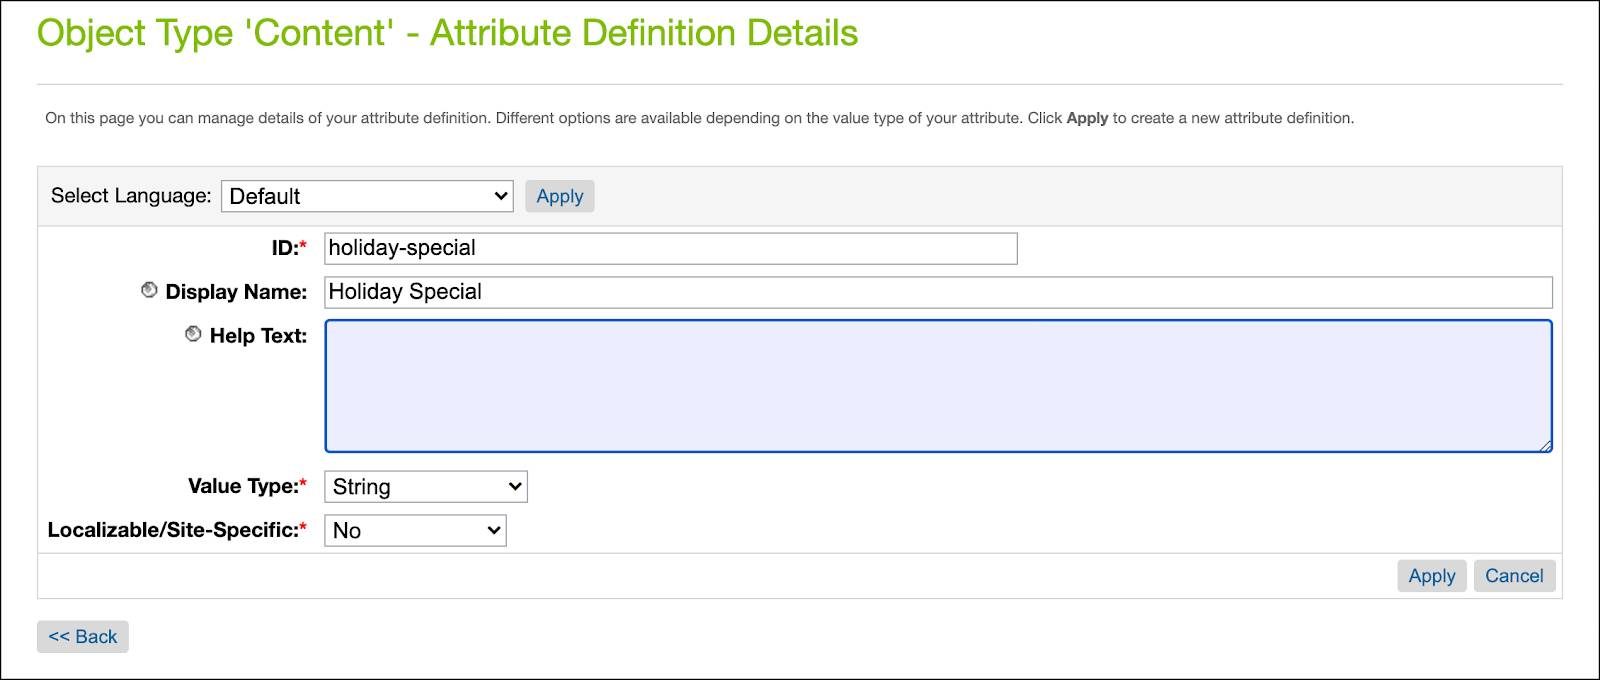 In Business Manager, create a new system content object attribute: holiday-special.